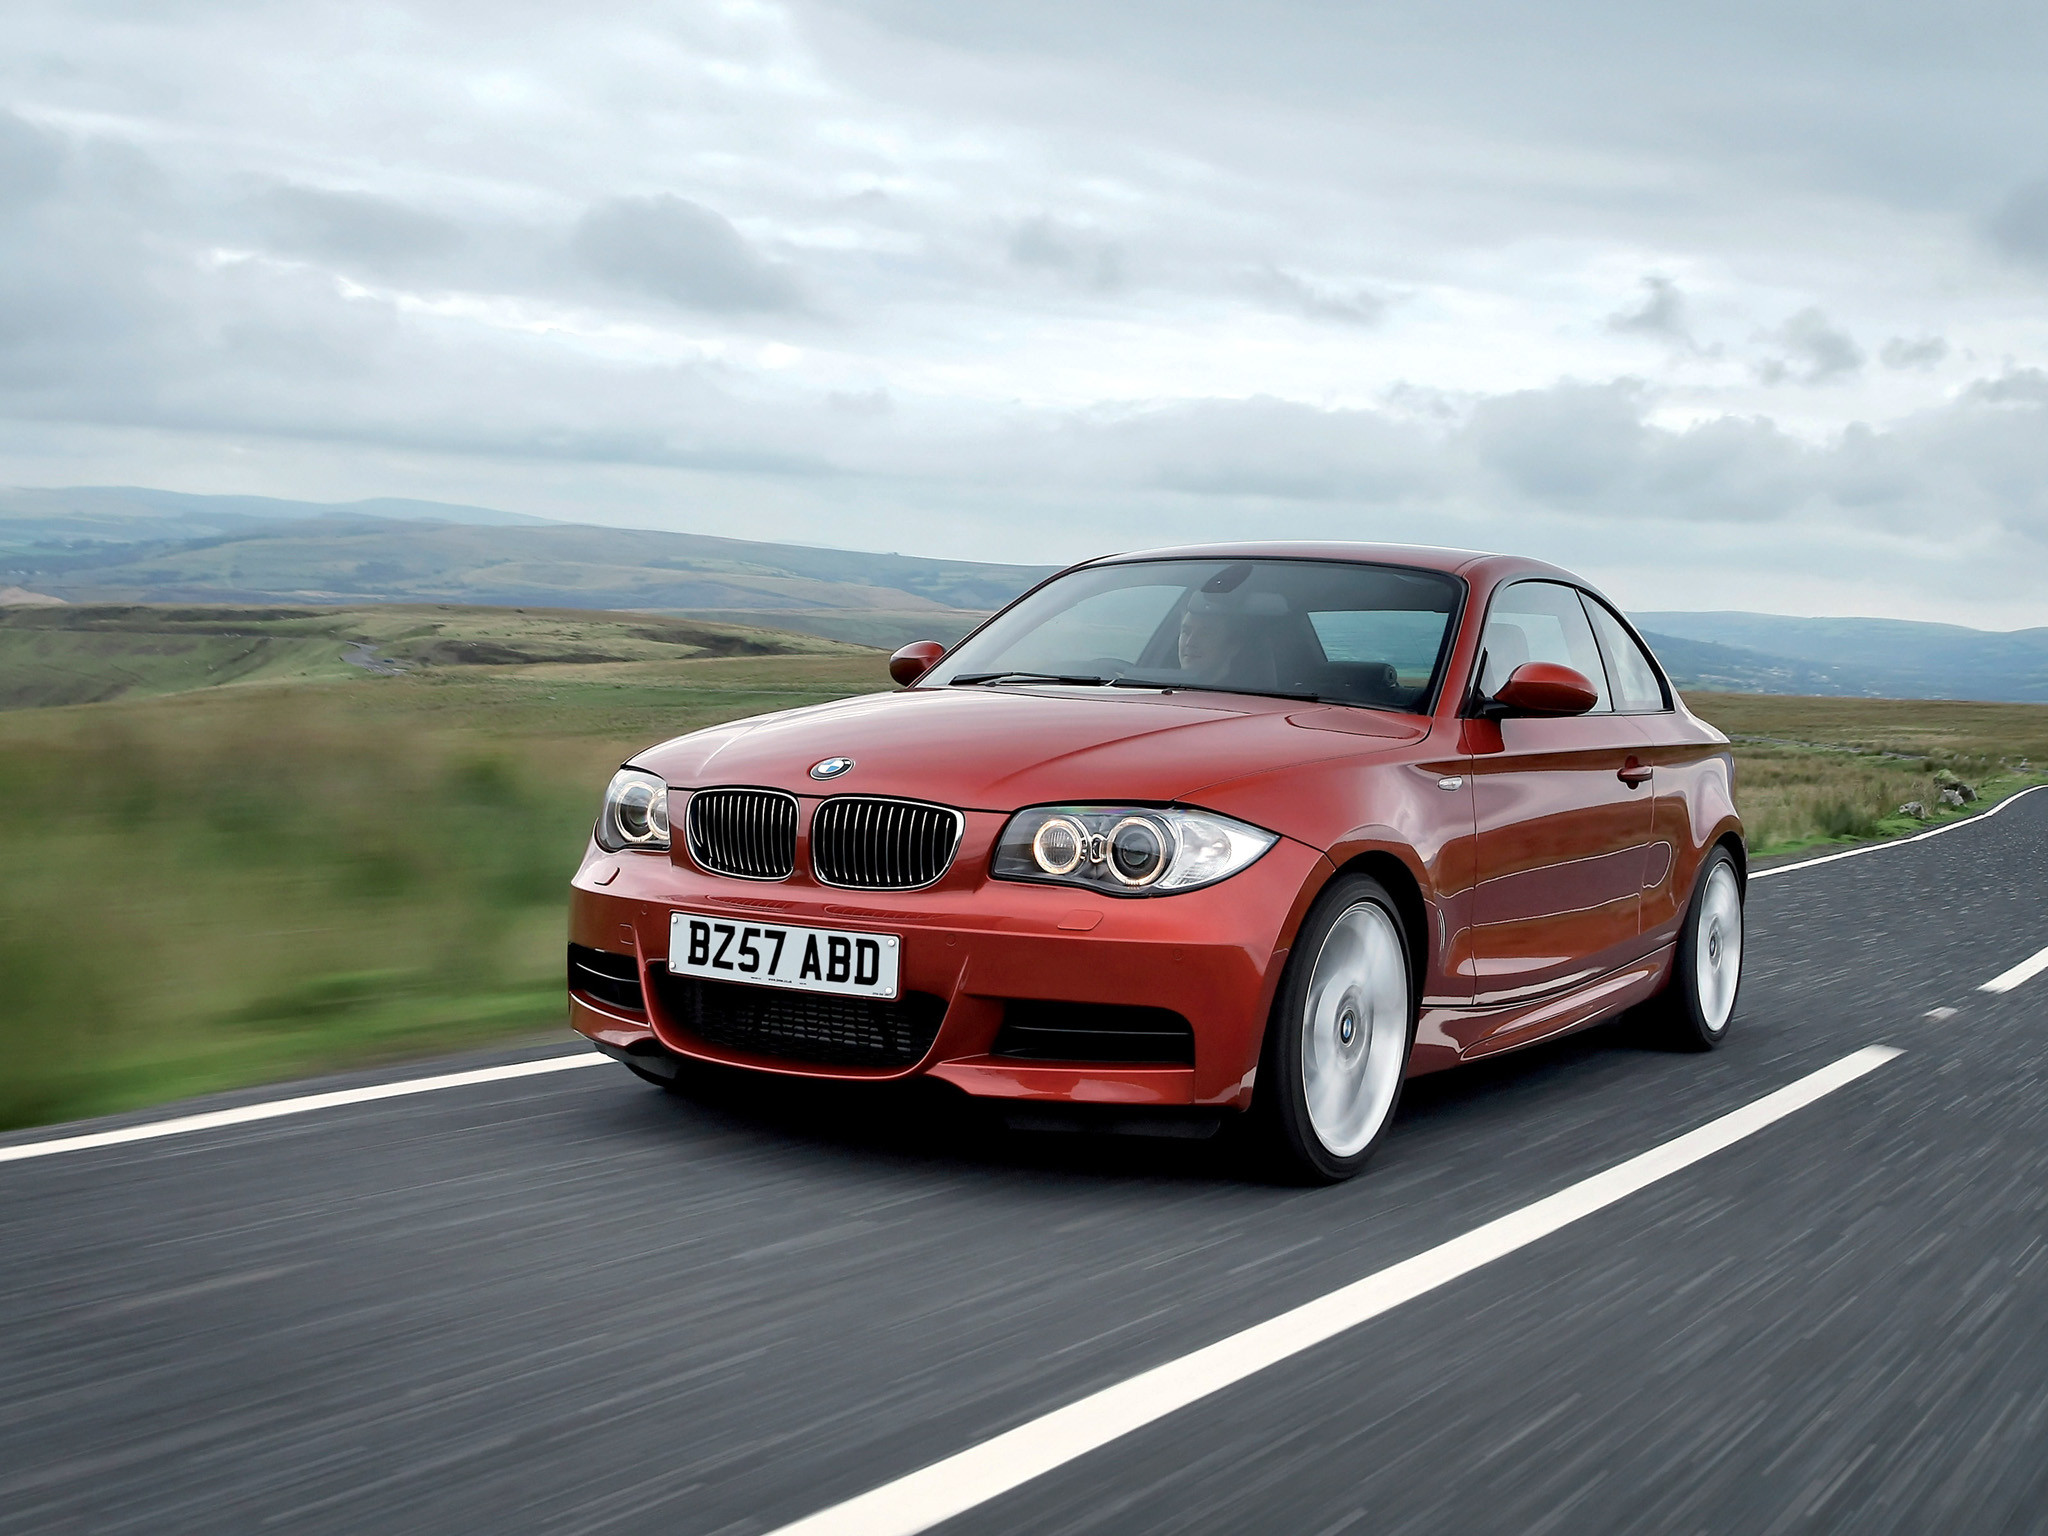 Res: 2048x1536, BMW 135i Coupe UK spec E82 Wallpapers Car wallpapers HD